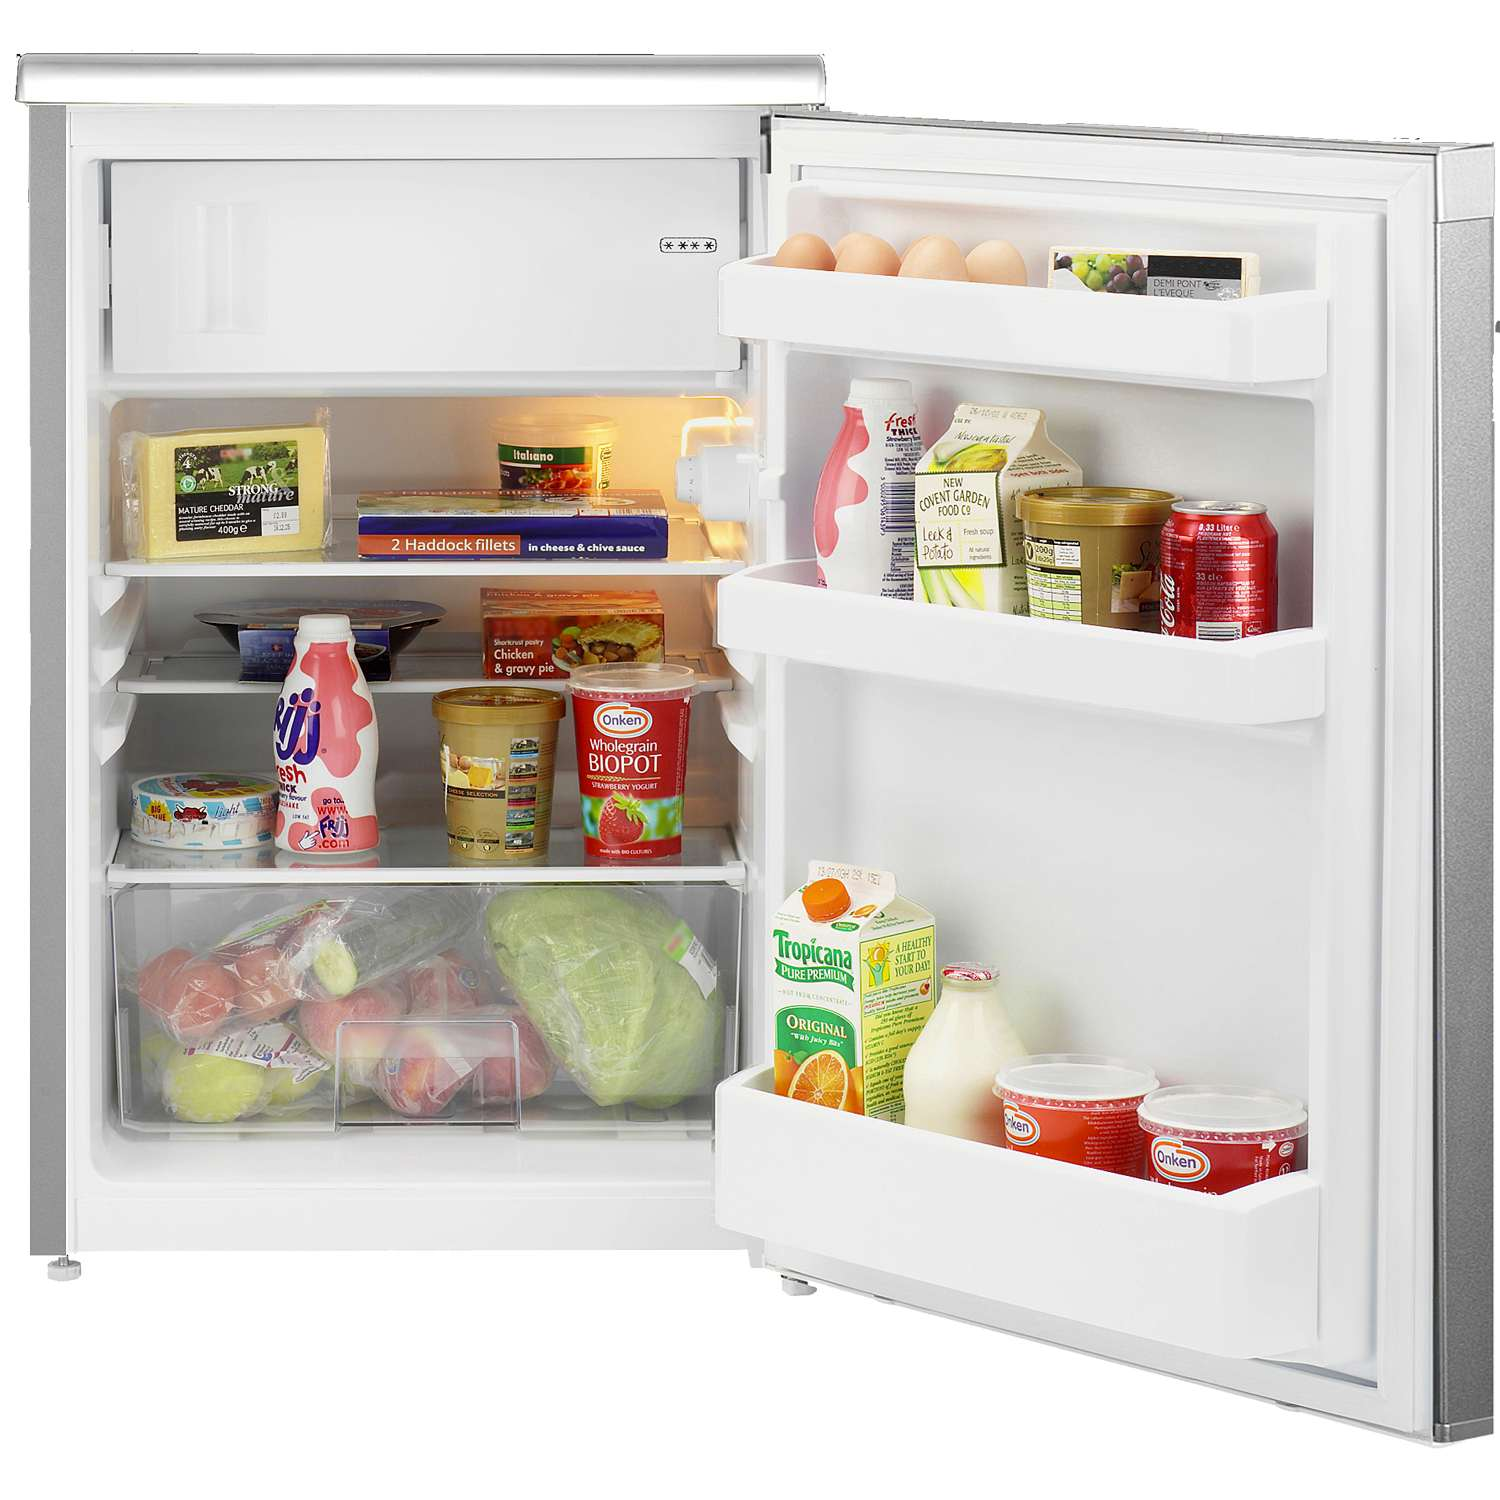 Beko mini fridge